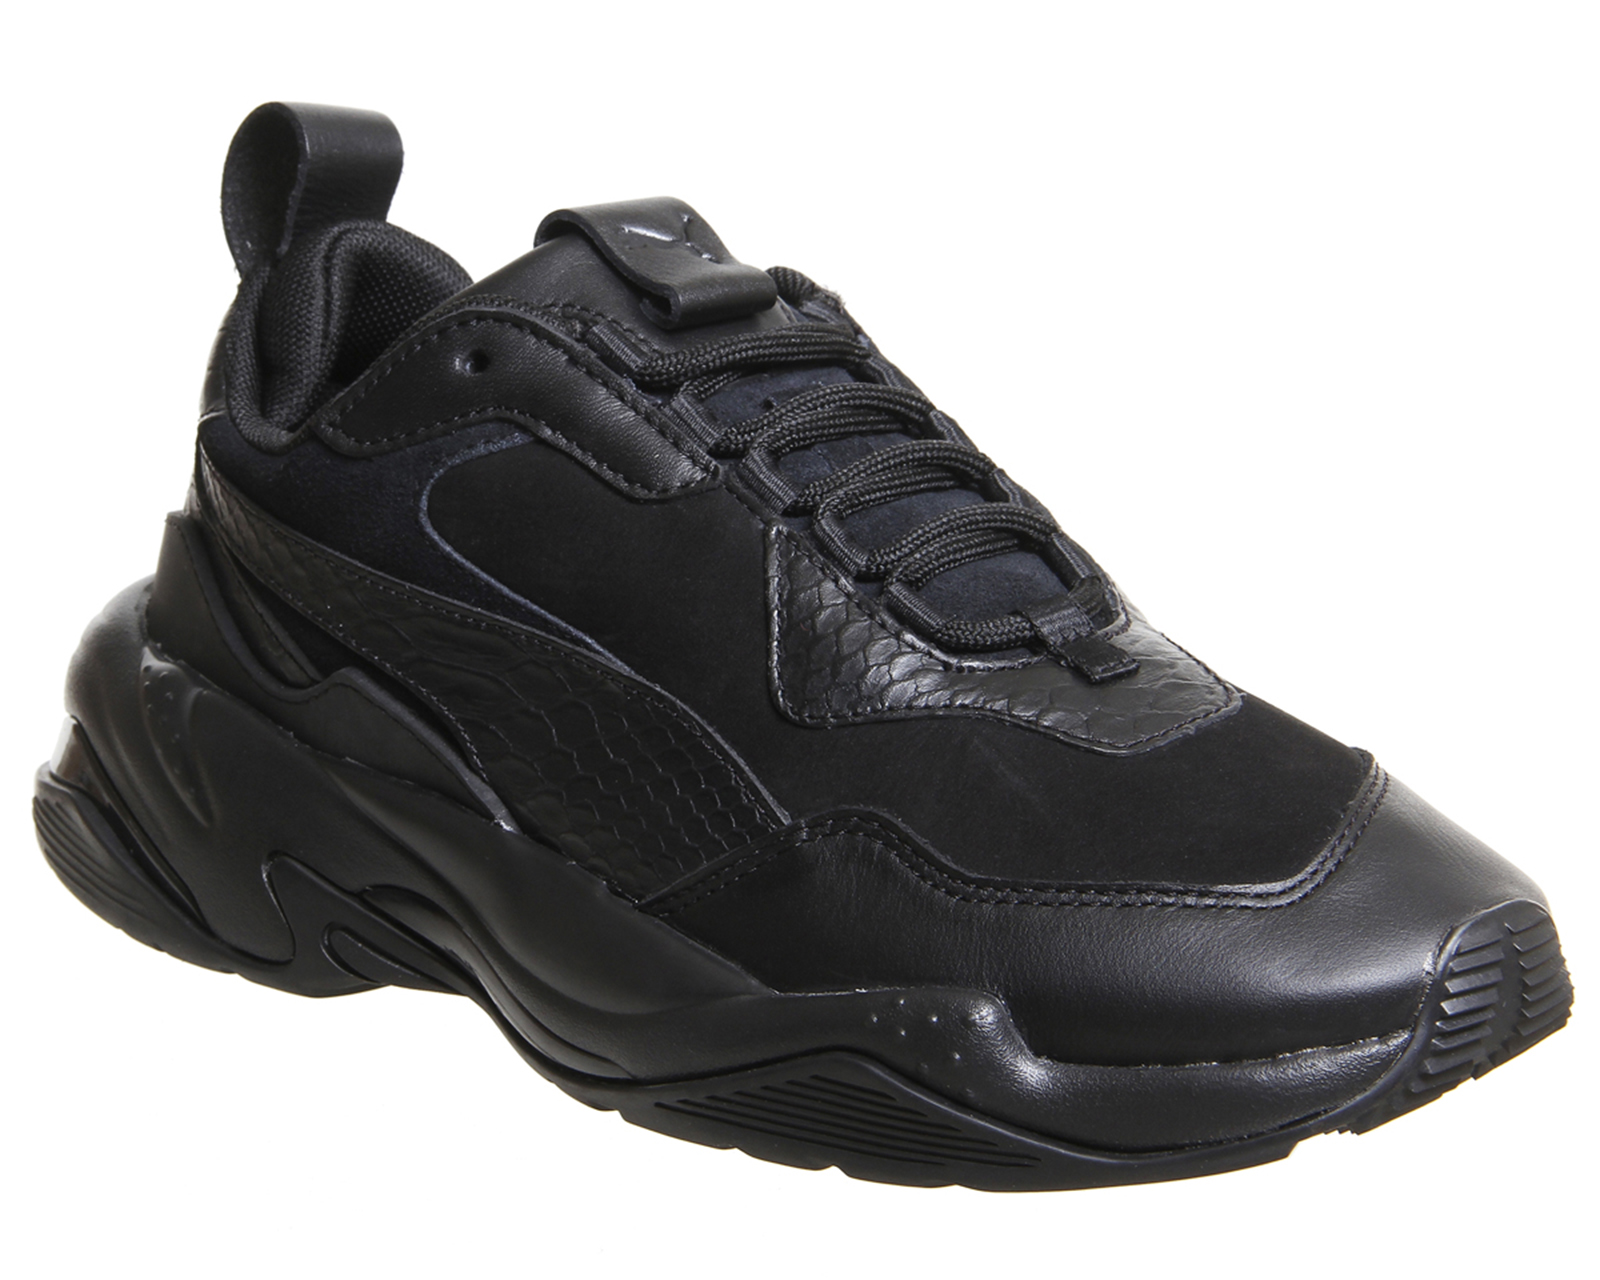 534020b8f7bcd0 Sentinel Puma Thunder Desert Trainers Puma Black Trainers Shoes